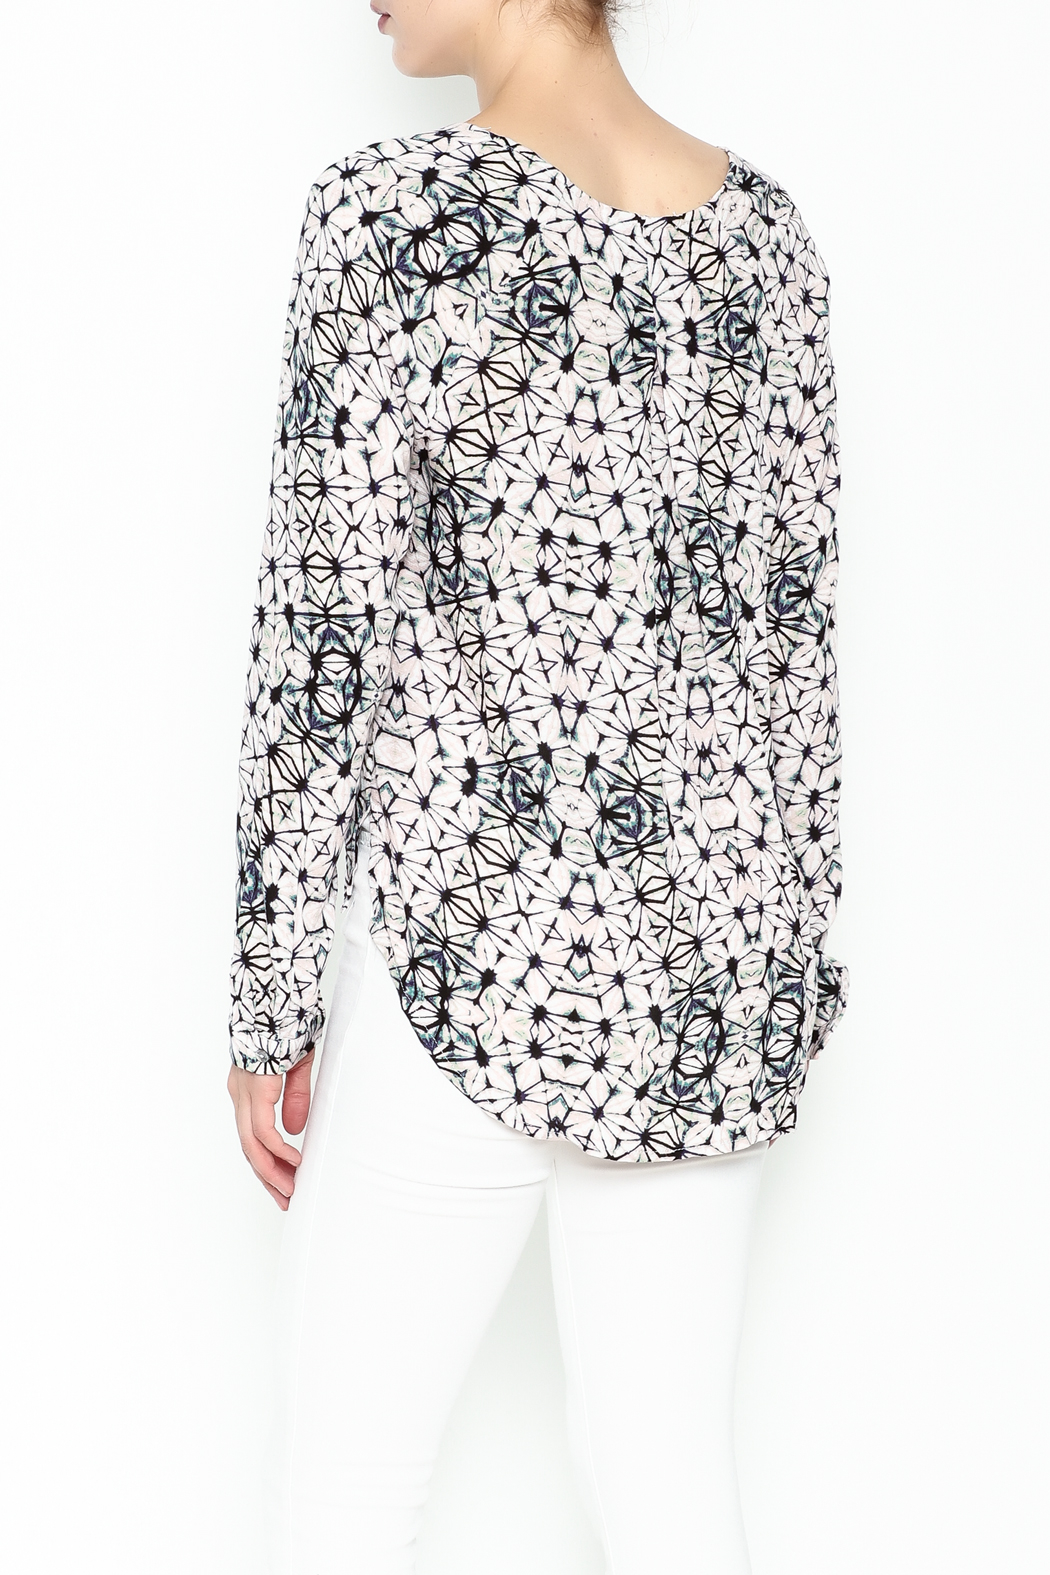 Olivaceous Kaleidoscope Print Blouse - Back Cropped Image